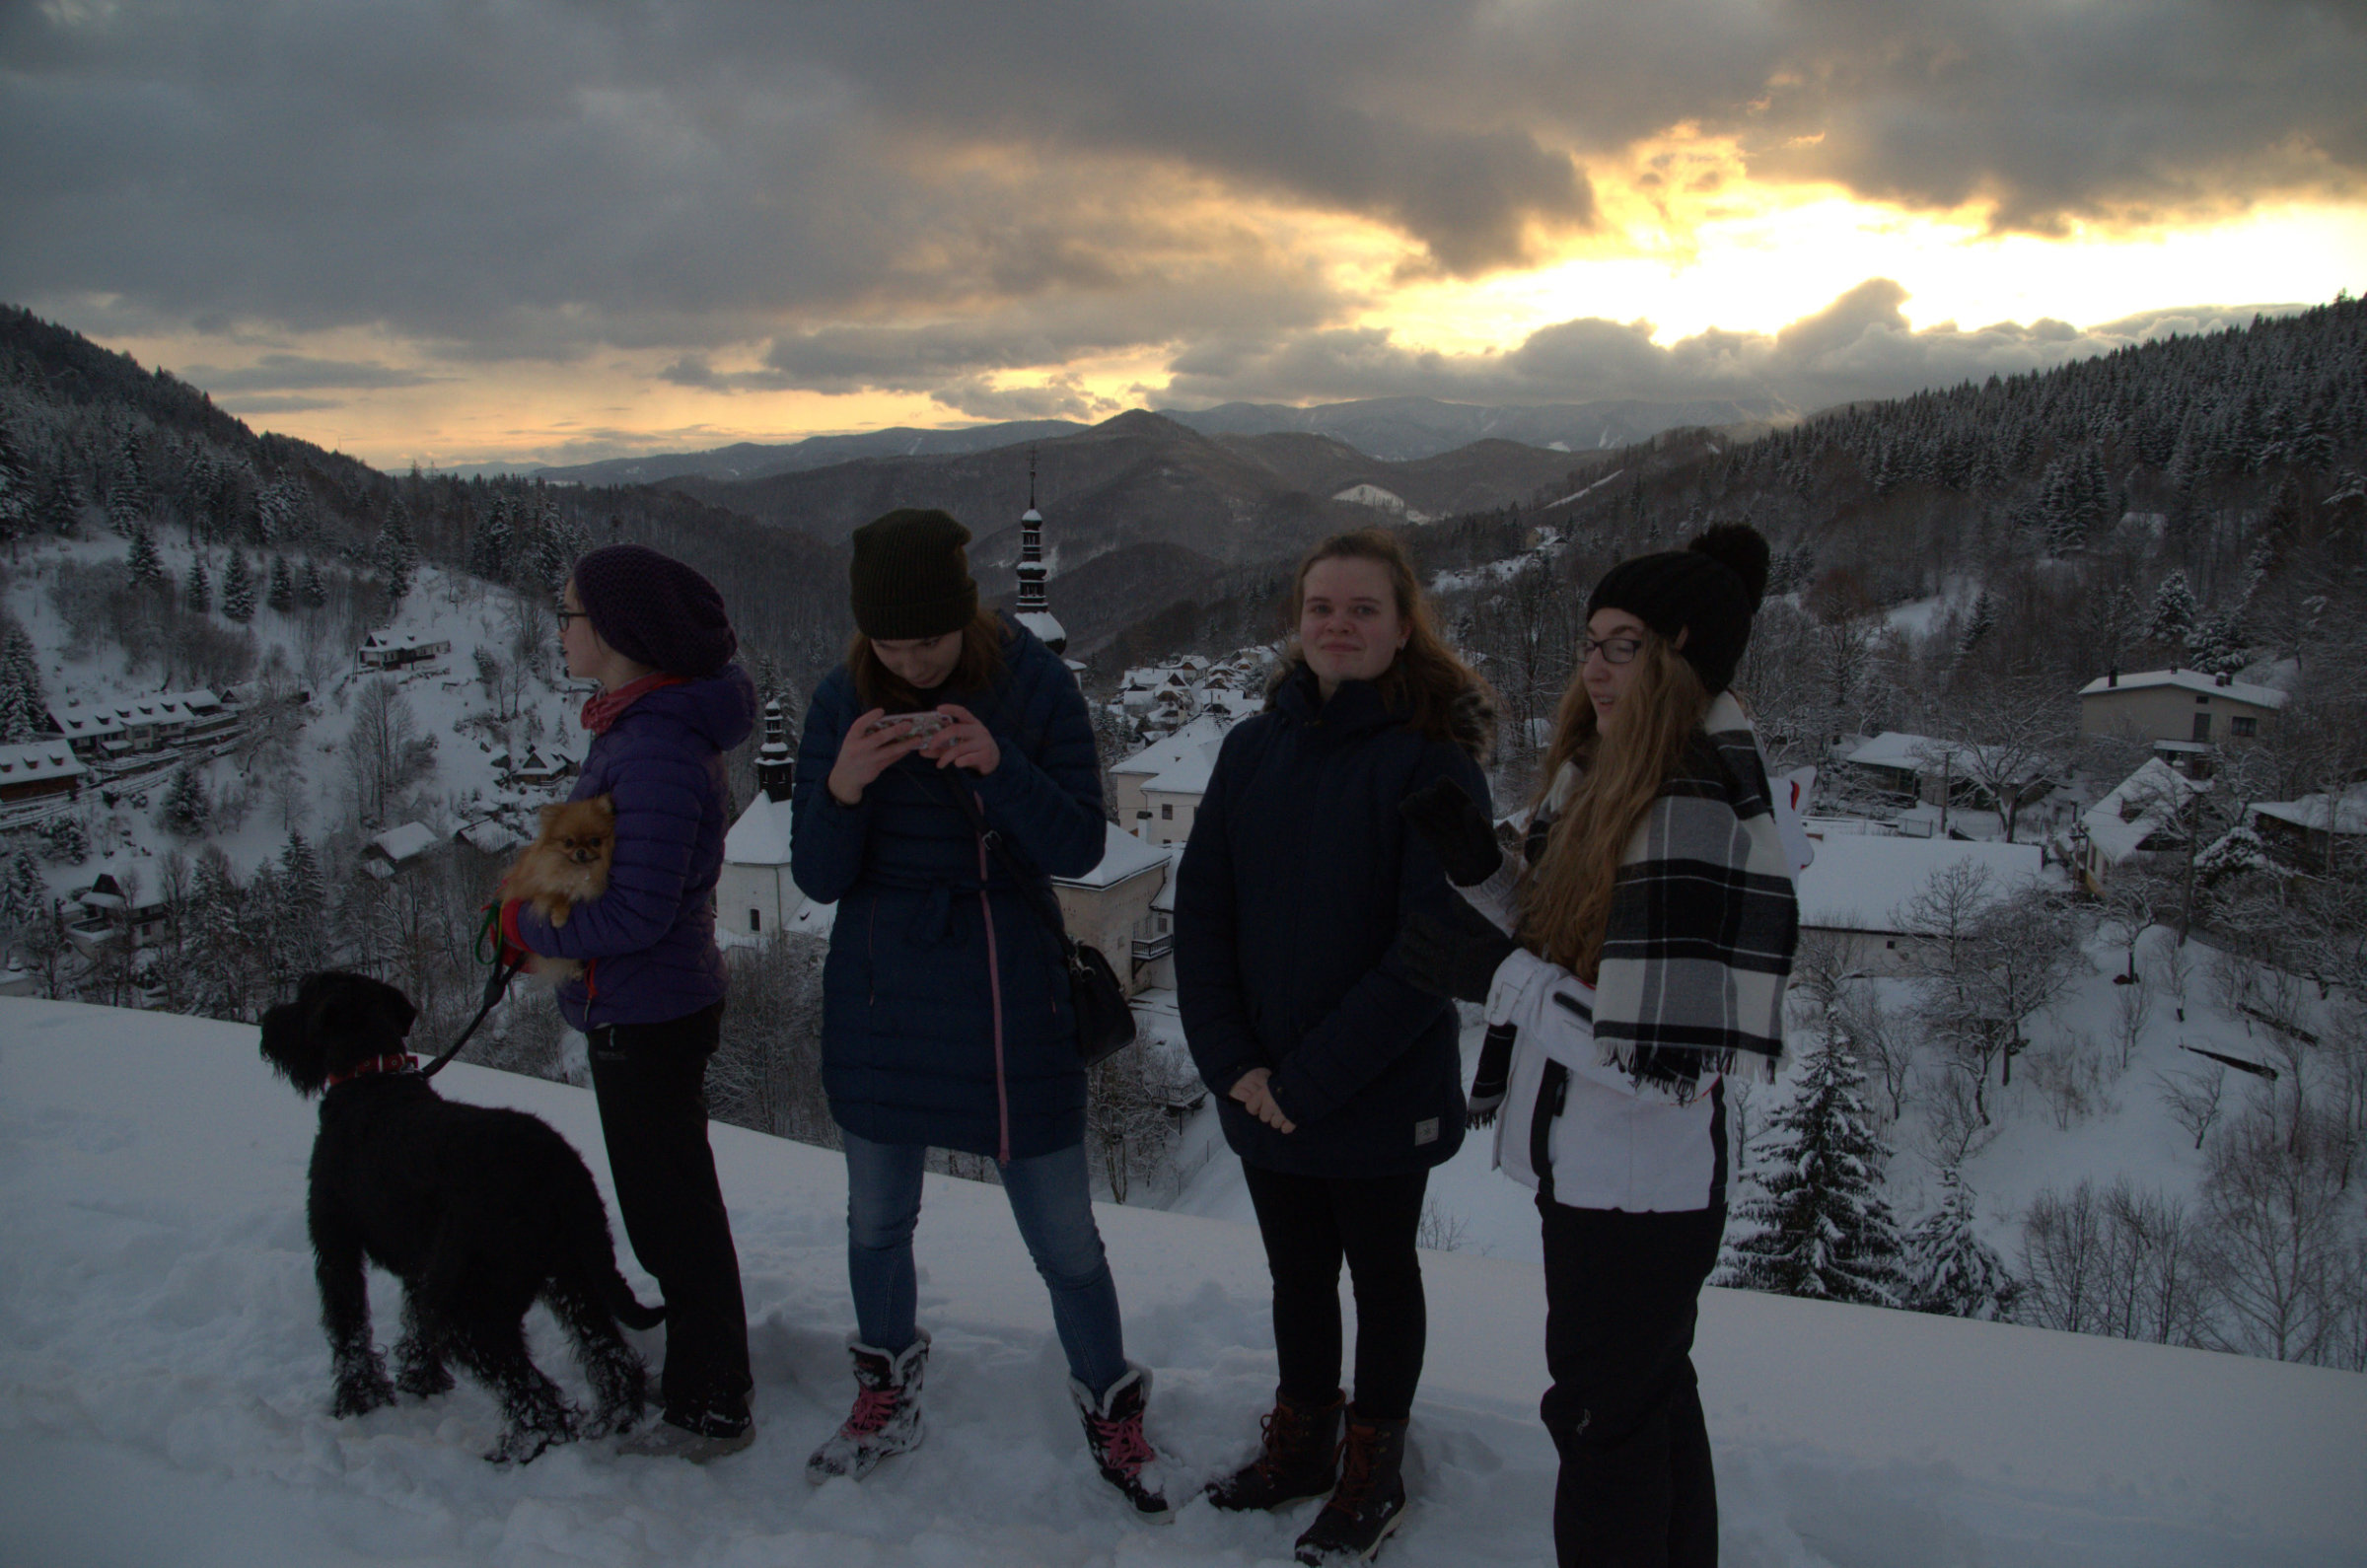 Elisbeth, her friend Bibi, and exchange students from Germany